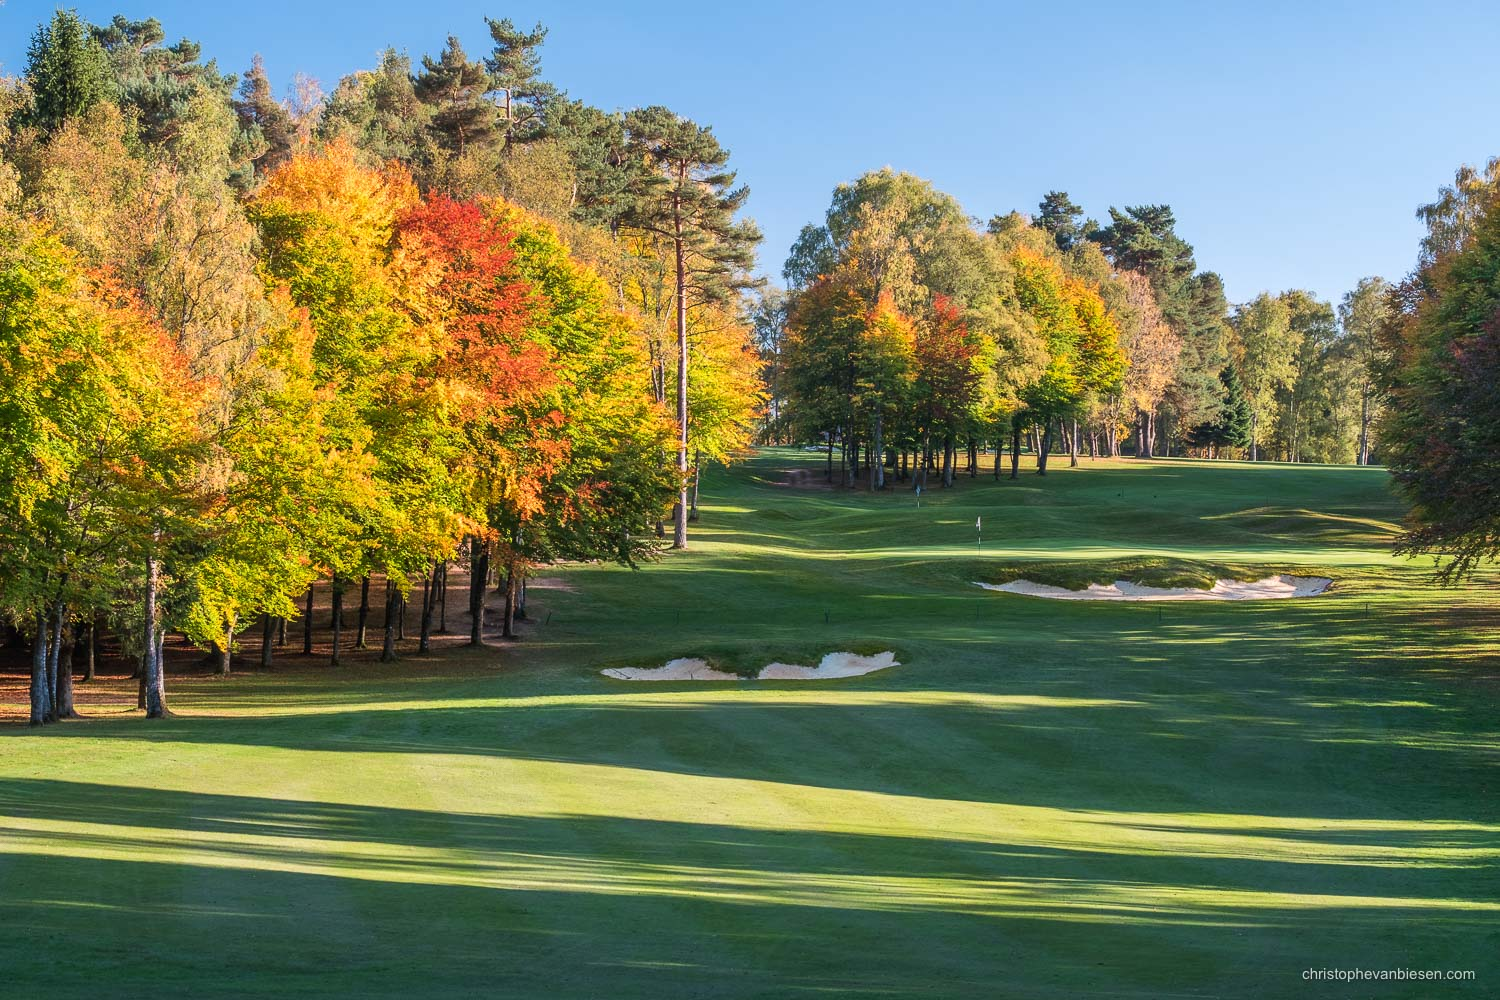 Work with me - Commission Work - Golf Club Grand Ducal Luxembourg Senningerberg - Hole 3 - Photography by Christophe Van Biesen - Luxembourg Landscape and Travel Photographer